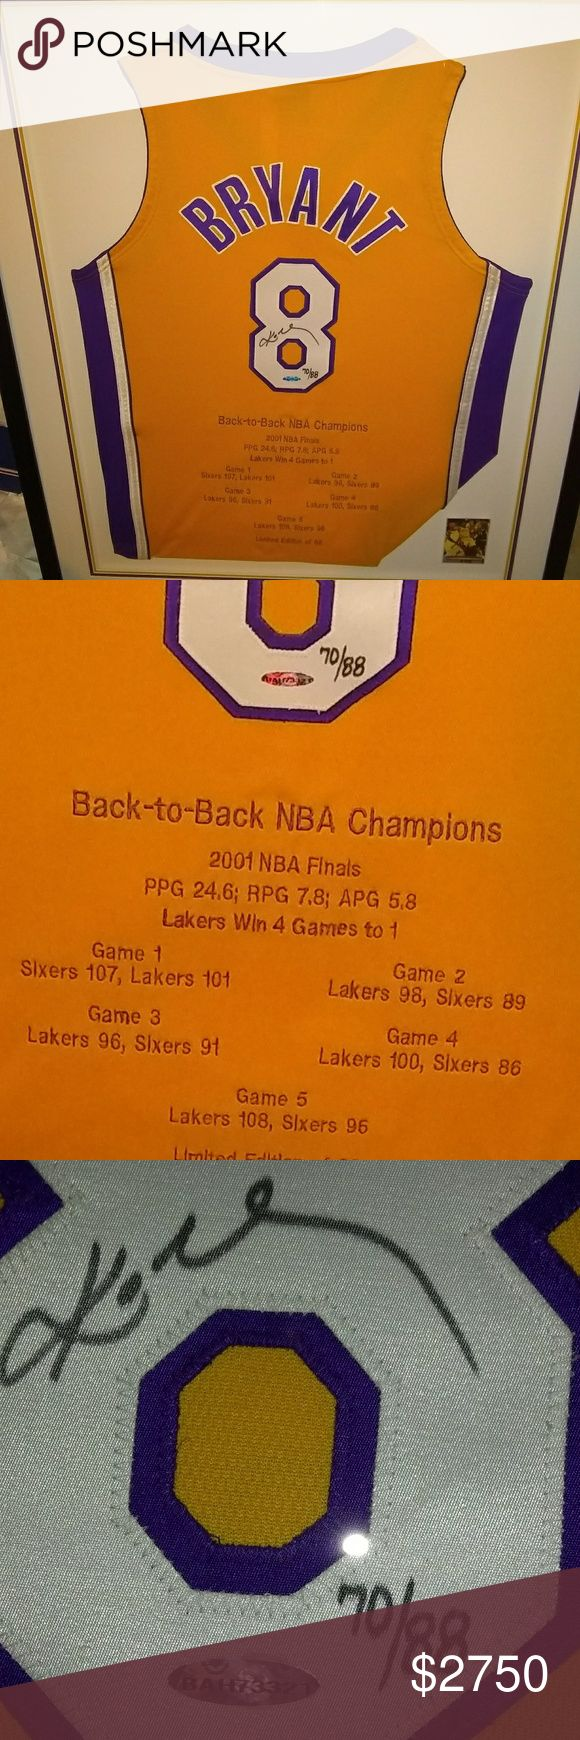 Kobe Bryant Autographed Lakers Final Jersey NWOT. COMES IN FRAMED LAKERS TEAM COLOR FRAME. Etched in Back-To-Back NBA CHAMPIONS. 2001 NBA FINALS. 5 GAMES STATS. LIMITED EDITION 70/88. UPPER DECK AUTHENTICITY HOLOGRAM# BAH73321. MAKE OFFERS. MAKES FOR A GREAT GIFR FOR THAT LAKERS/KOBE BRYANT FAN. MAKE OFFERS NBA Other